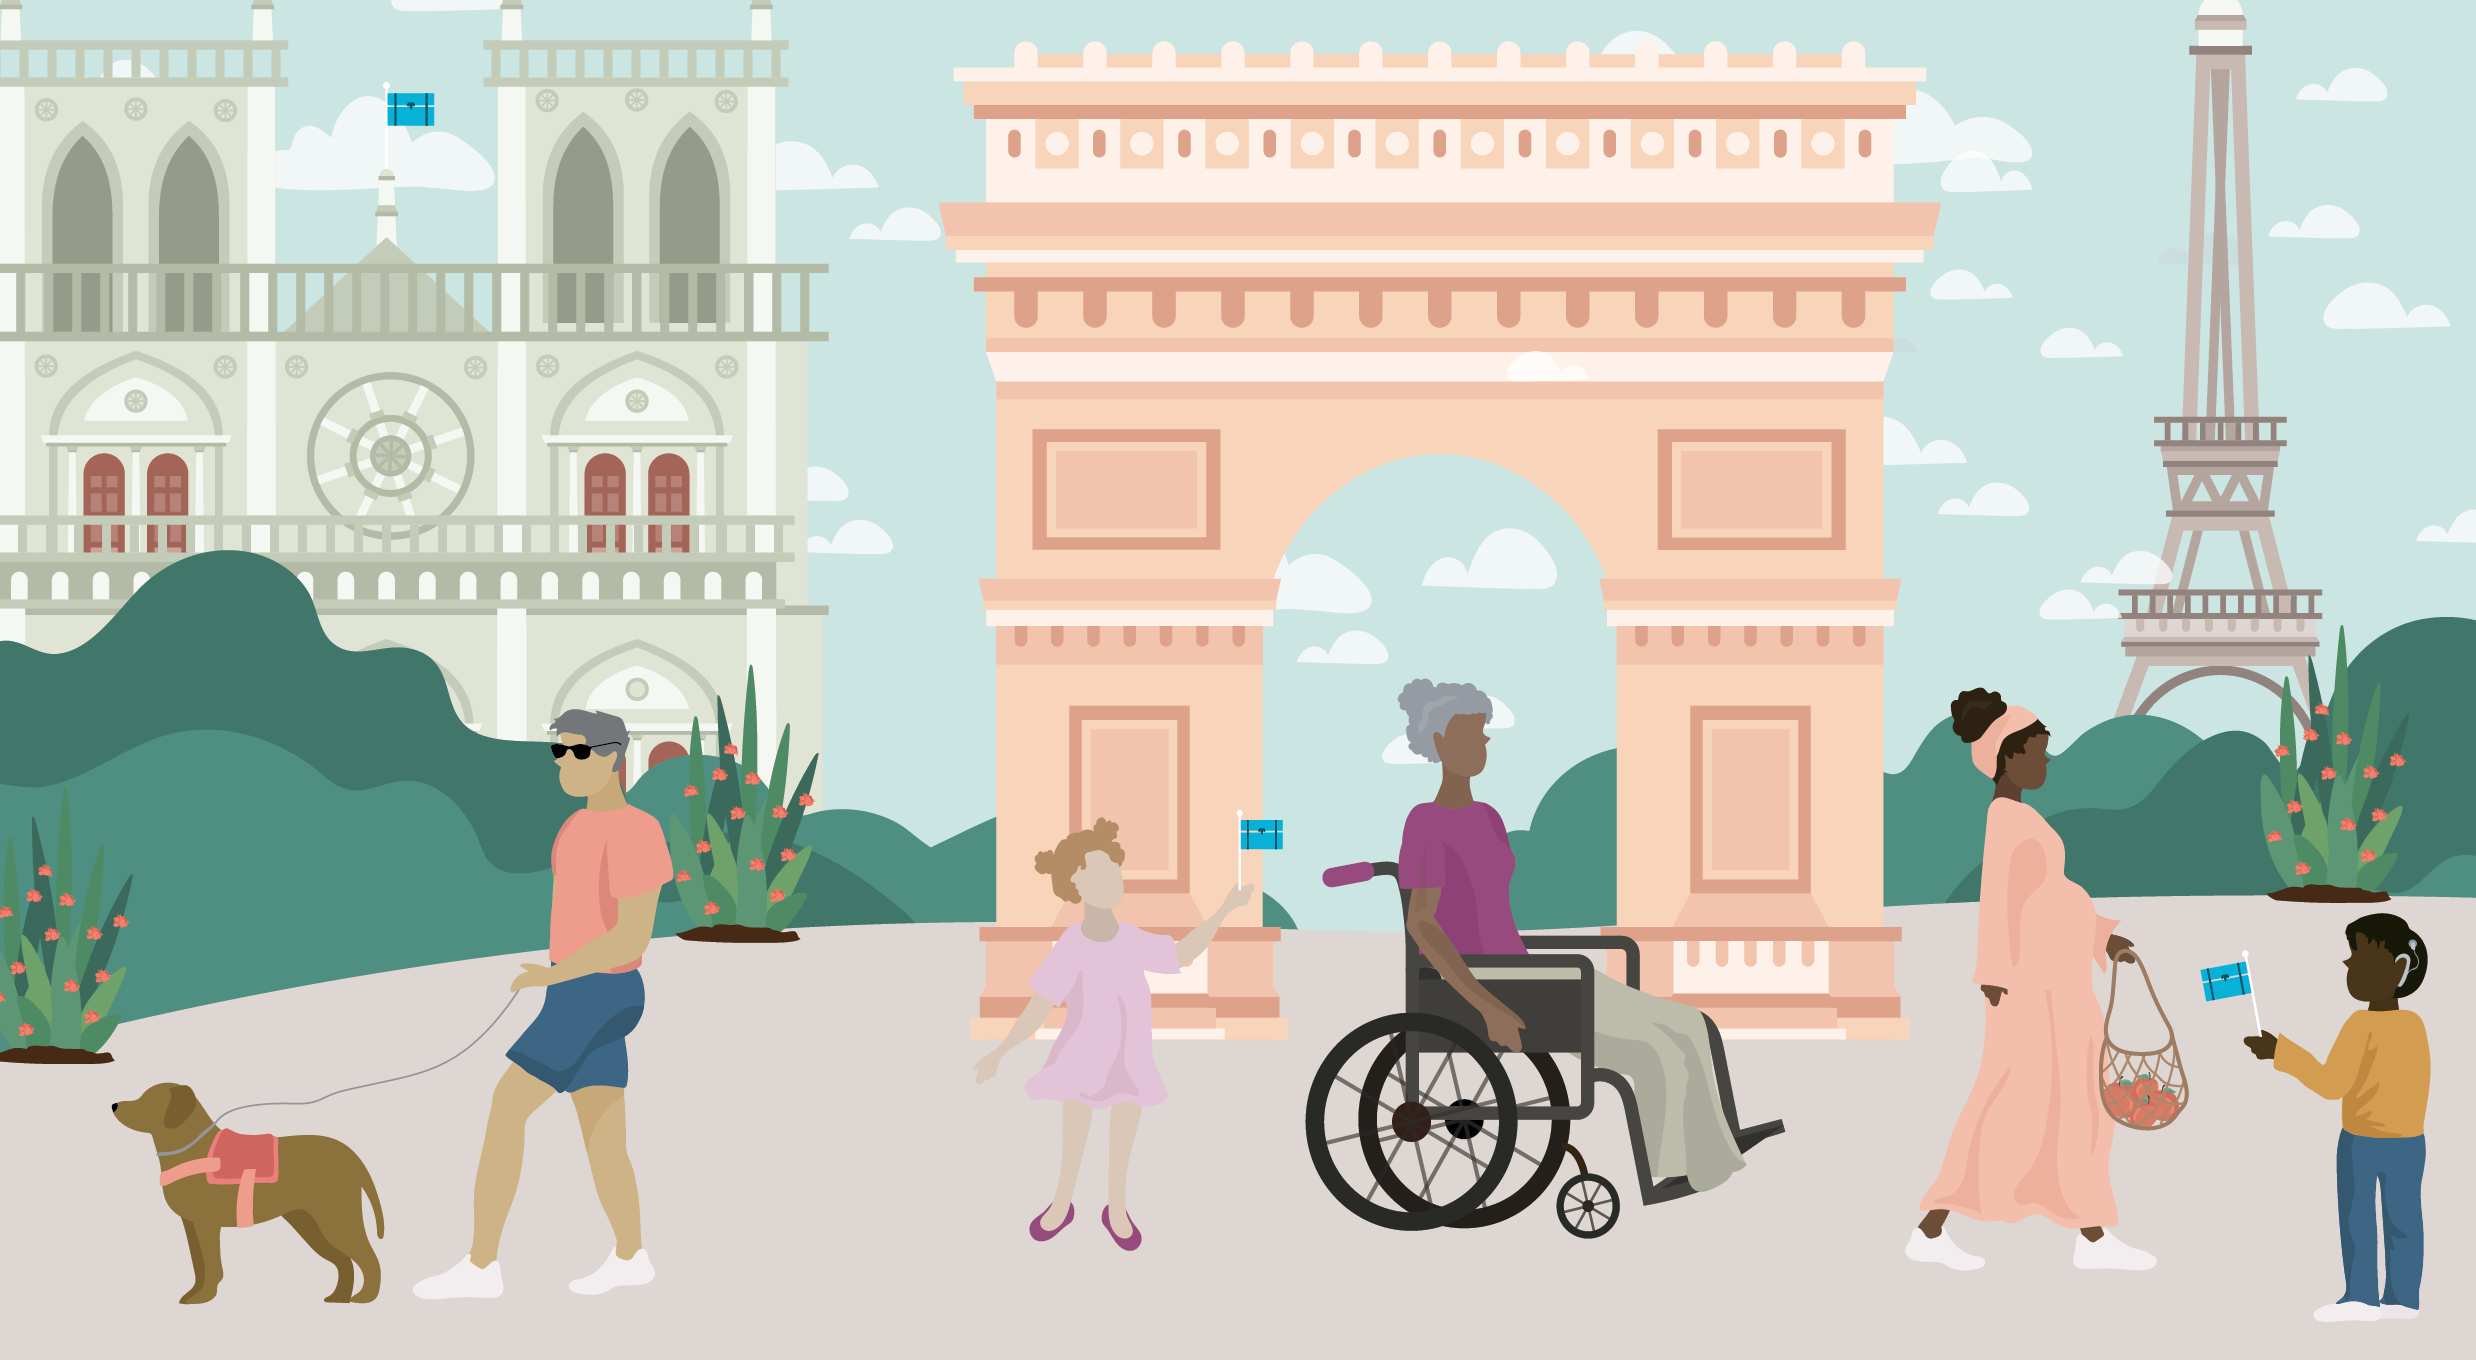 Man with guide dog, little girl with older woman in wheelchair, and pregnant woman with child. Background with Notre Dame, Arc de Triomphe, and Eiffel Tower. Illustration.